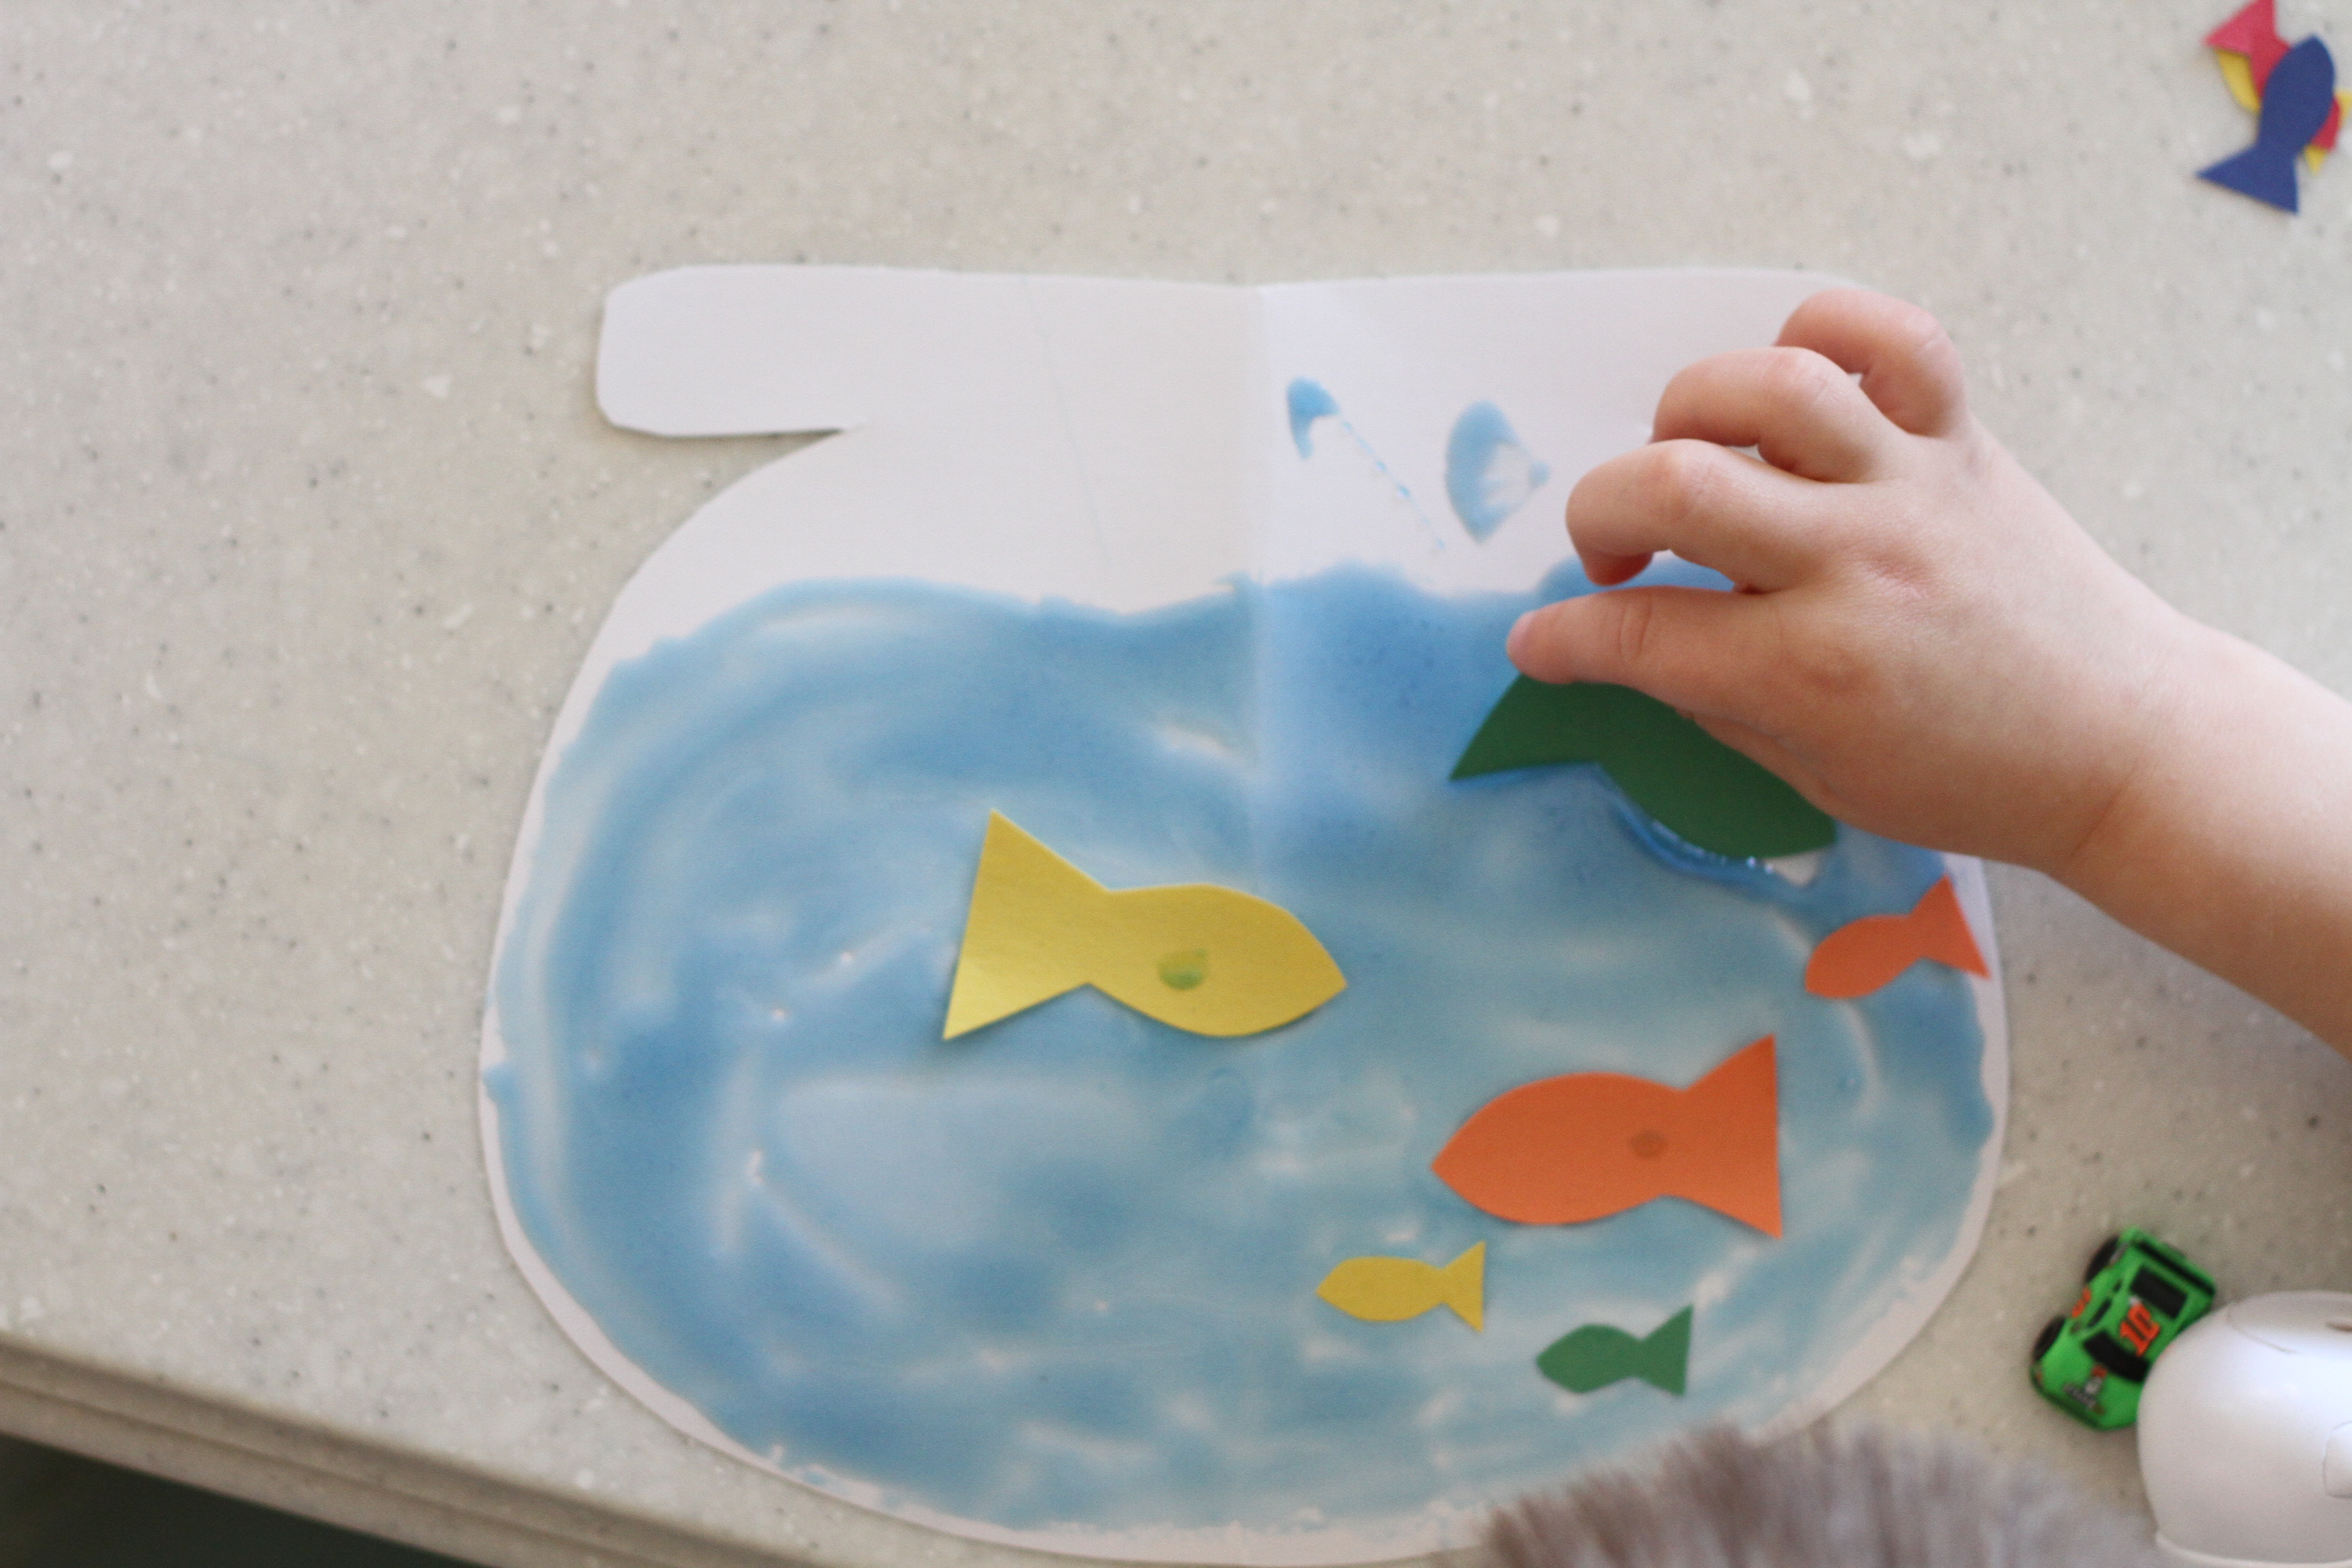 how to clean a small fish bowl without a net